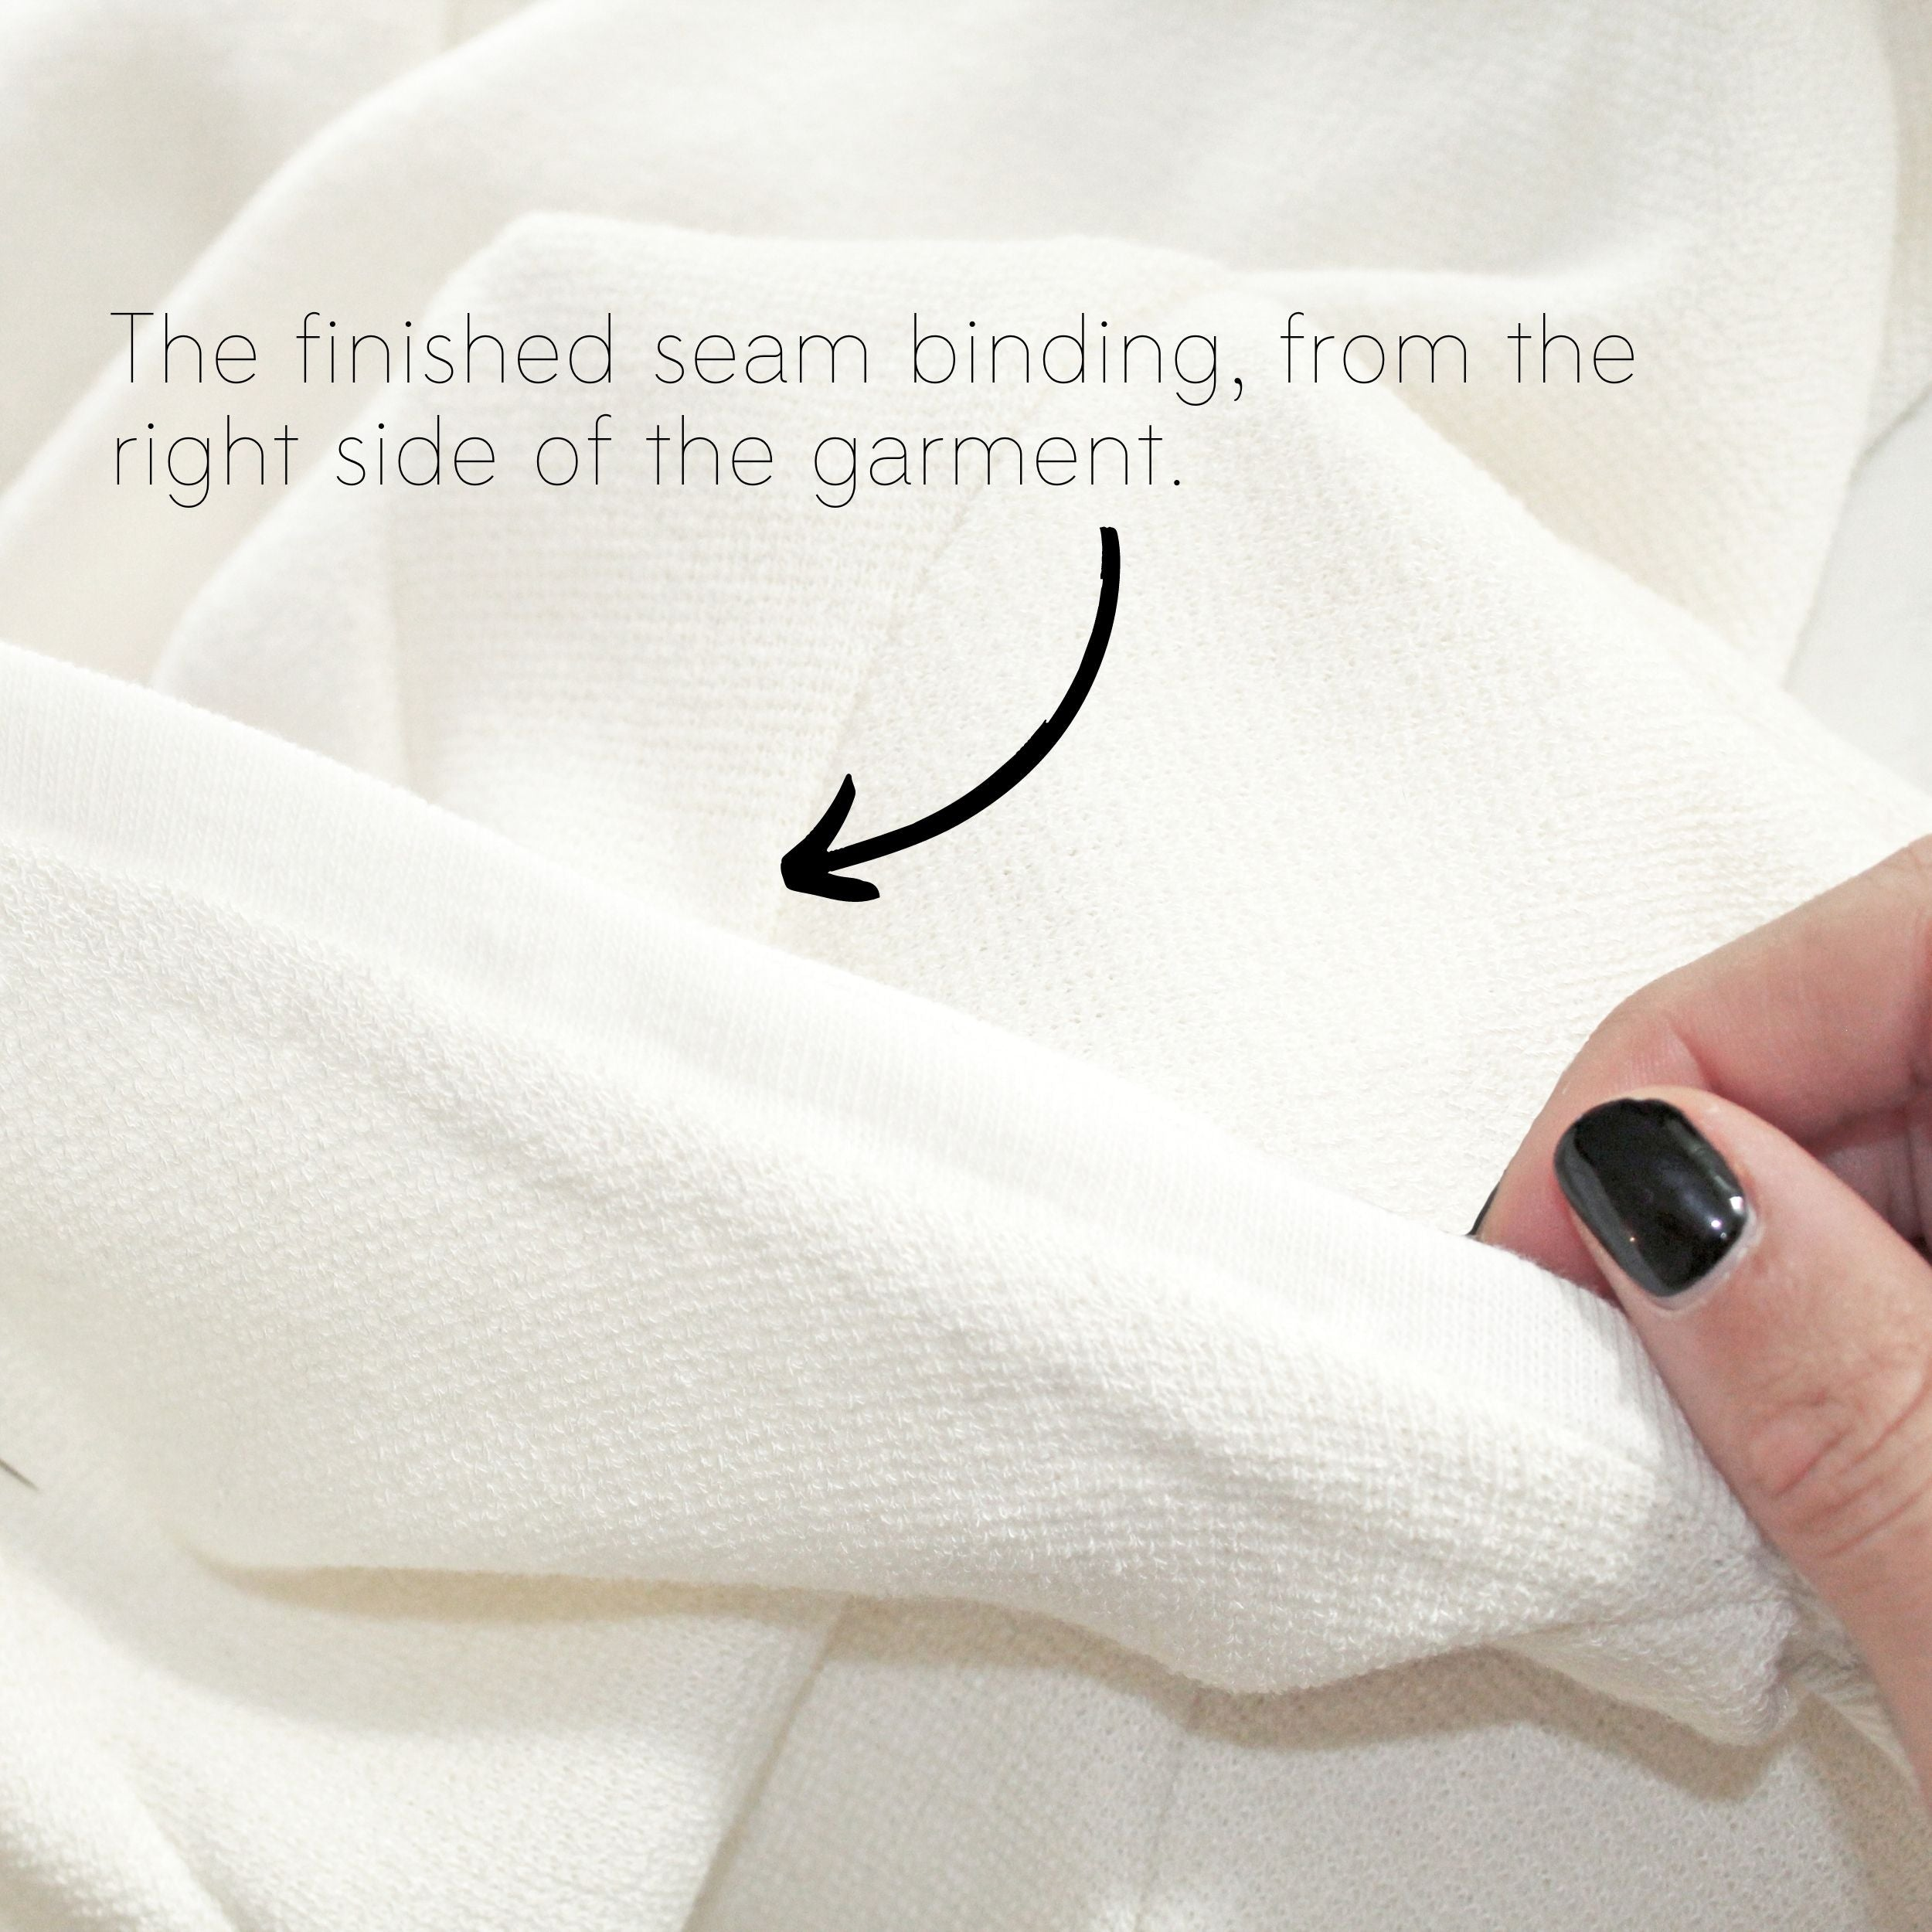 How To Sew A Knit Seam Binding Sewing Tutorial: Step 9.1